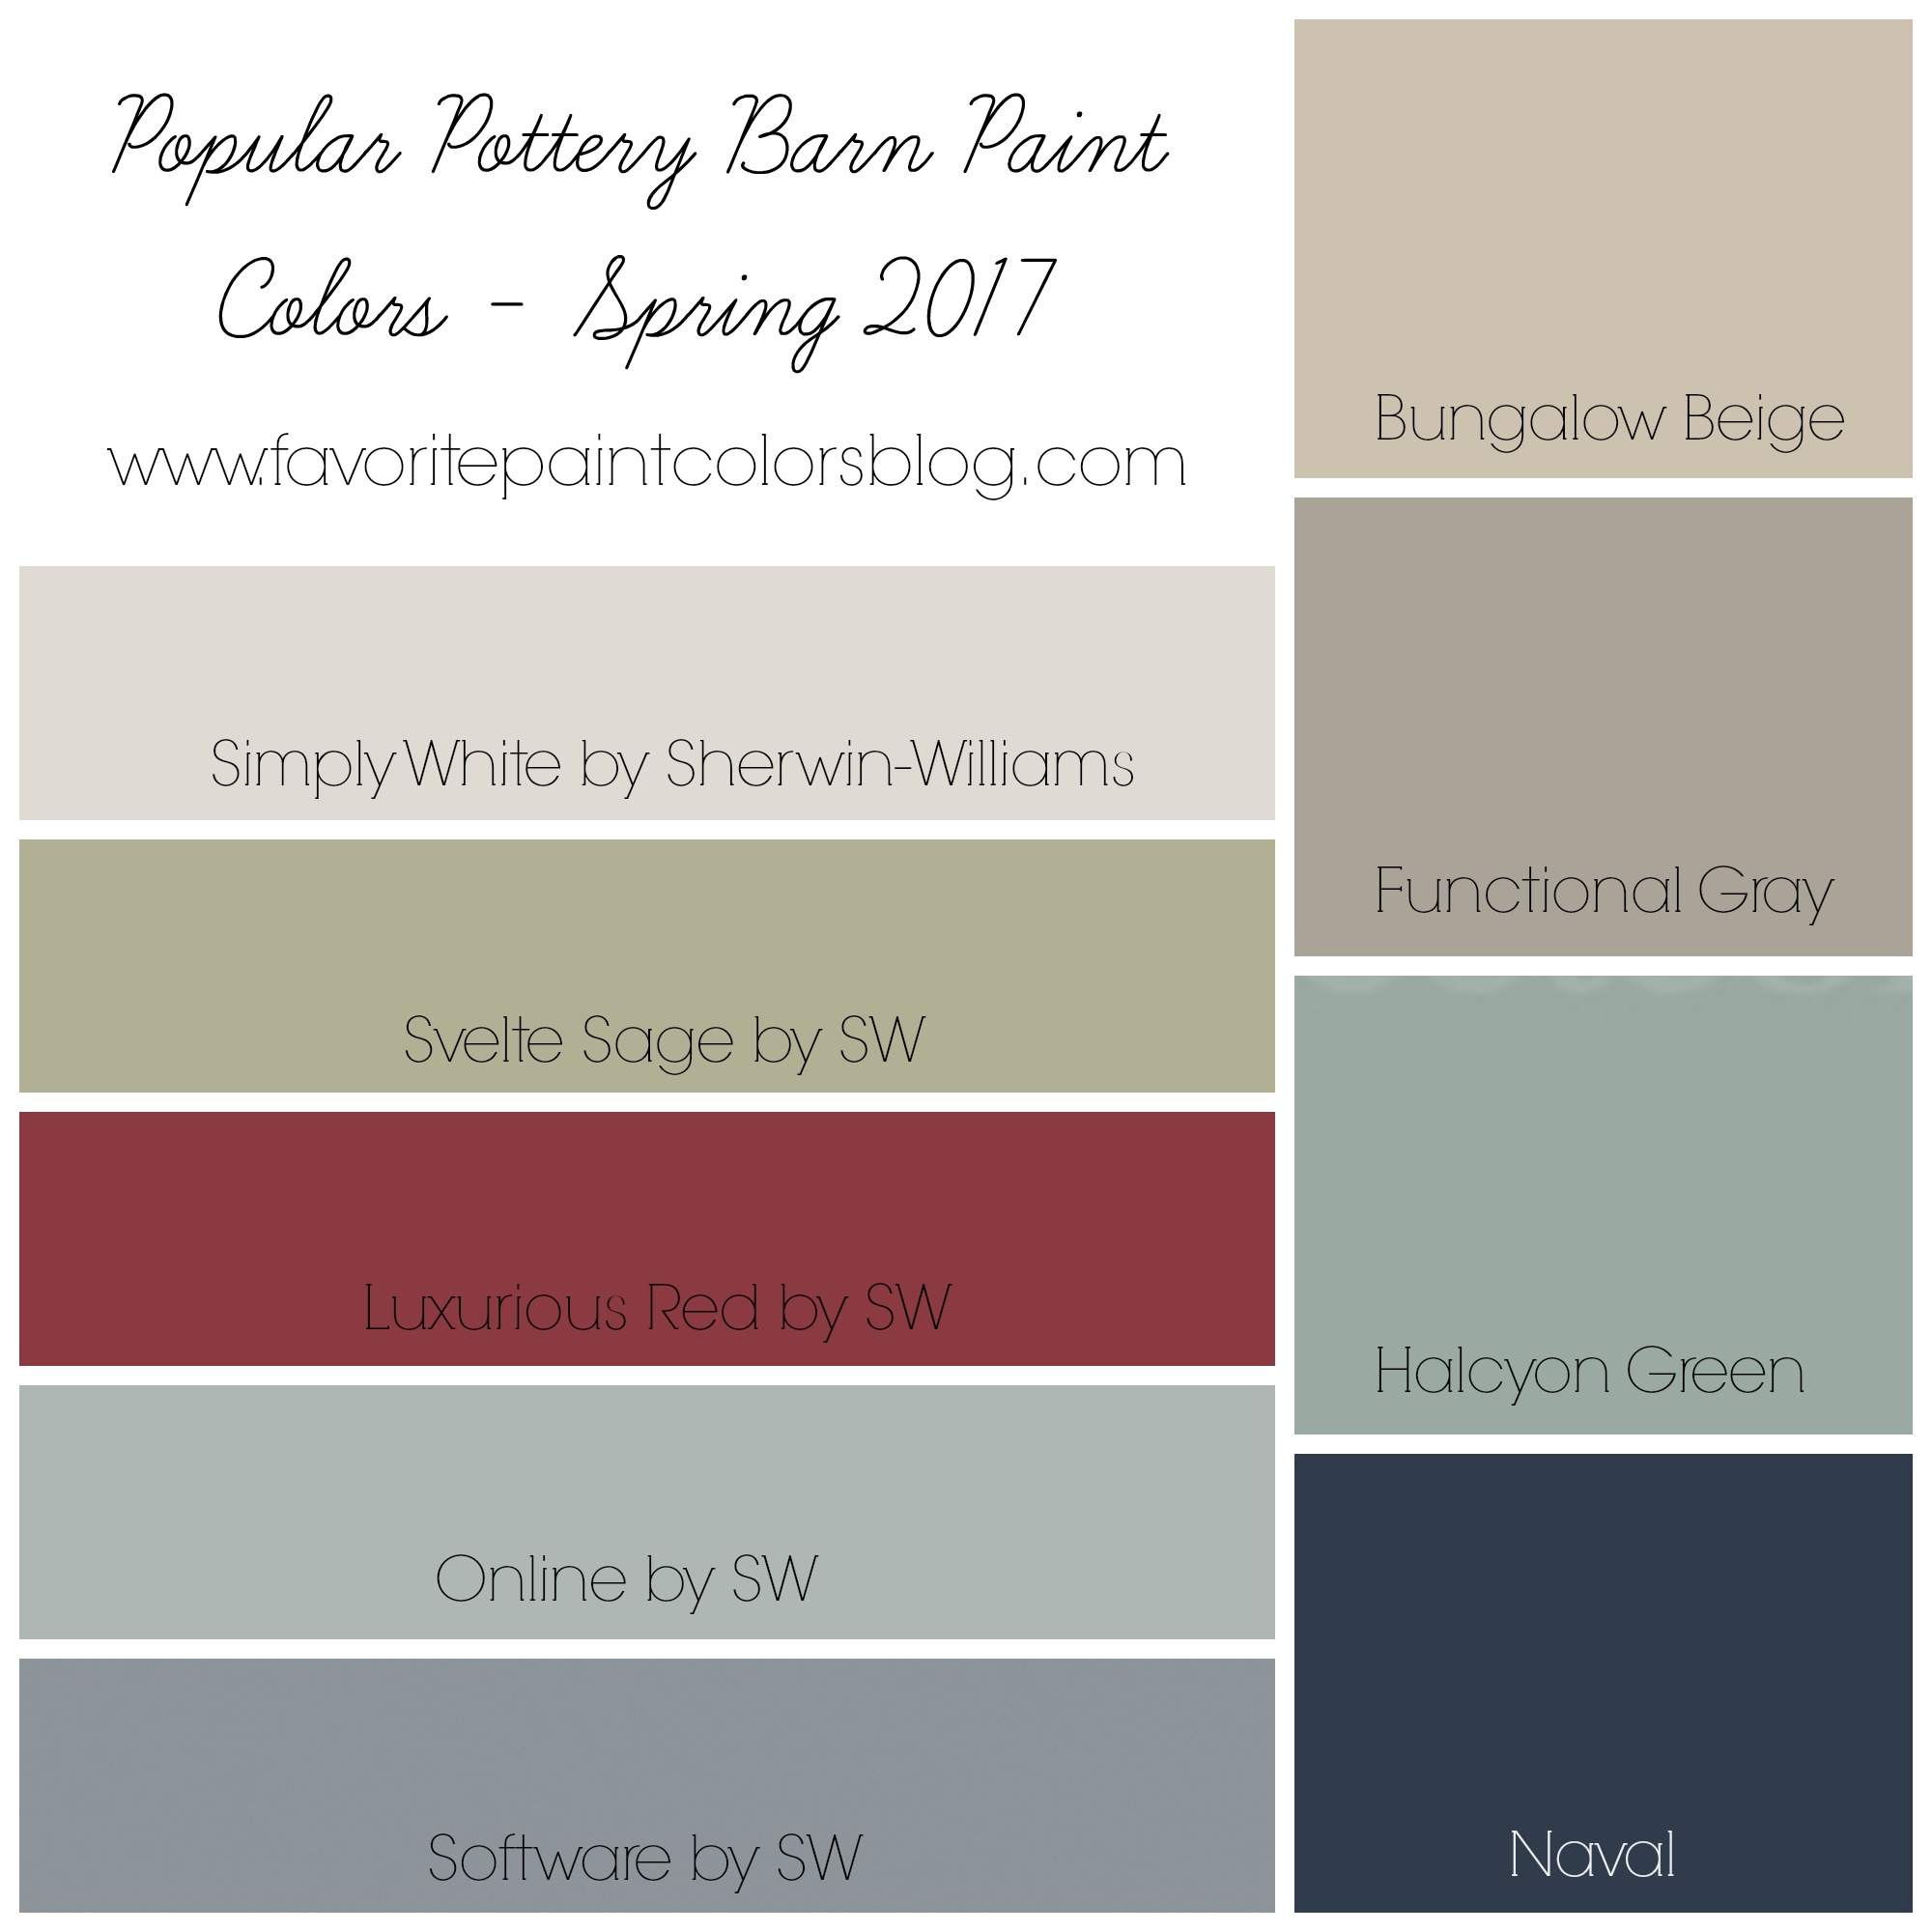 Most Popular Paint Colors Extraordinary Popular Pottery Barn Paint Colors  Favorite Paint Colors Blog Design Inspiration